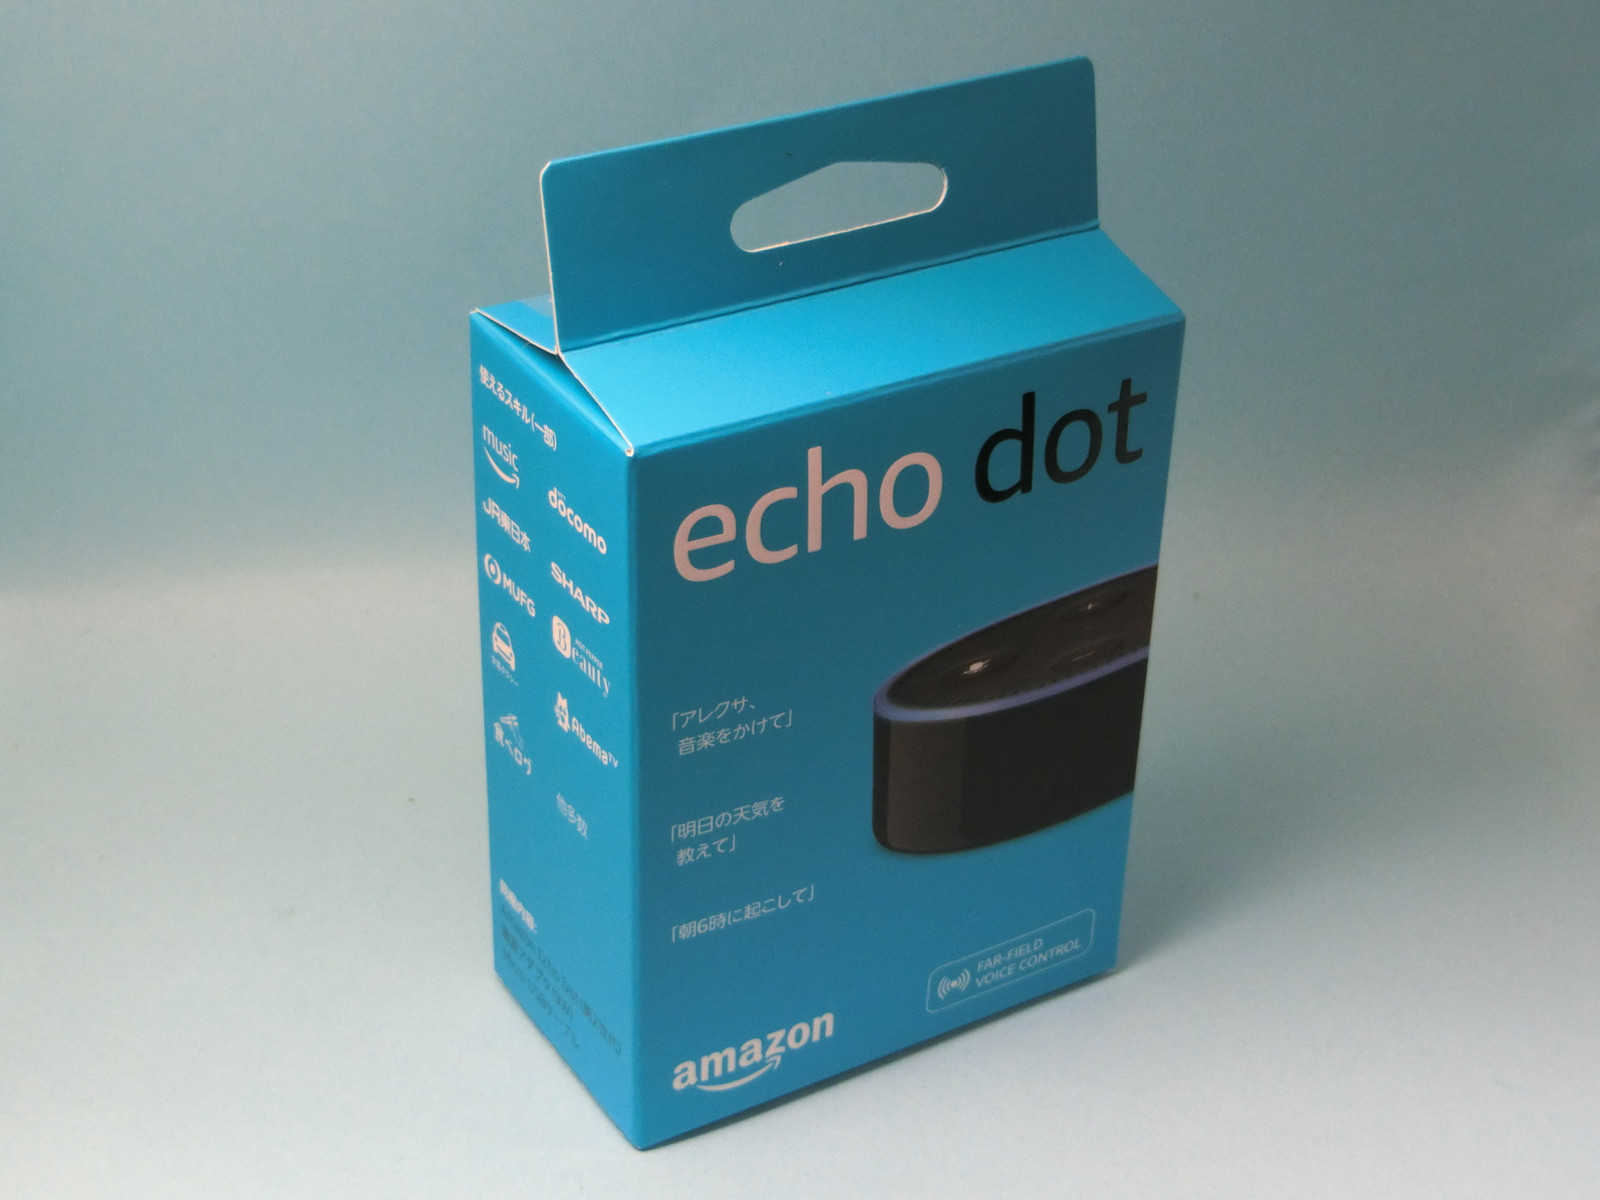 Amazon_echo_dot_1